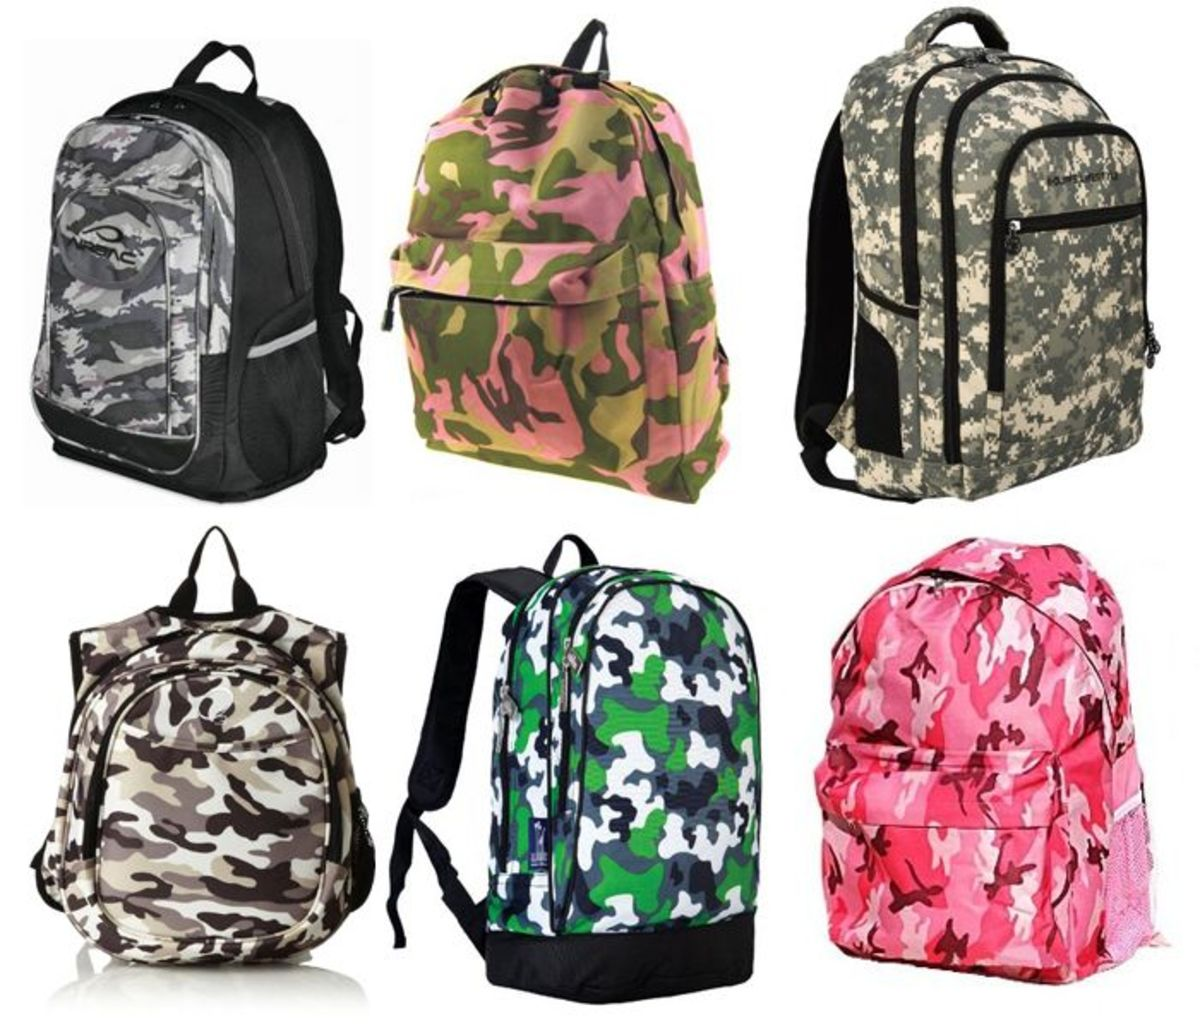 Camouflage Pattern Backpacks on Amazon